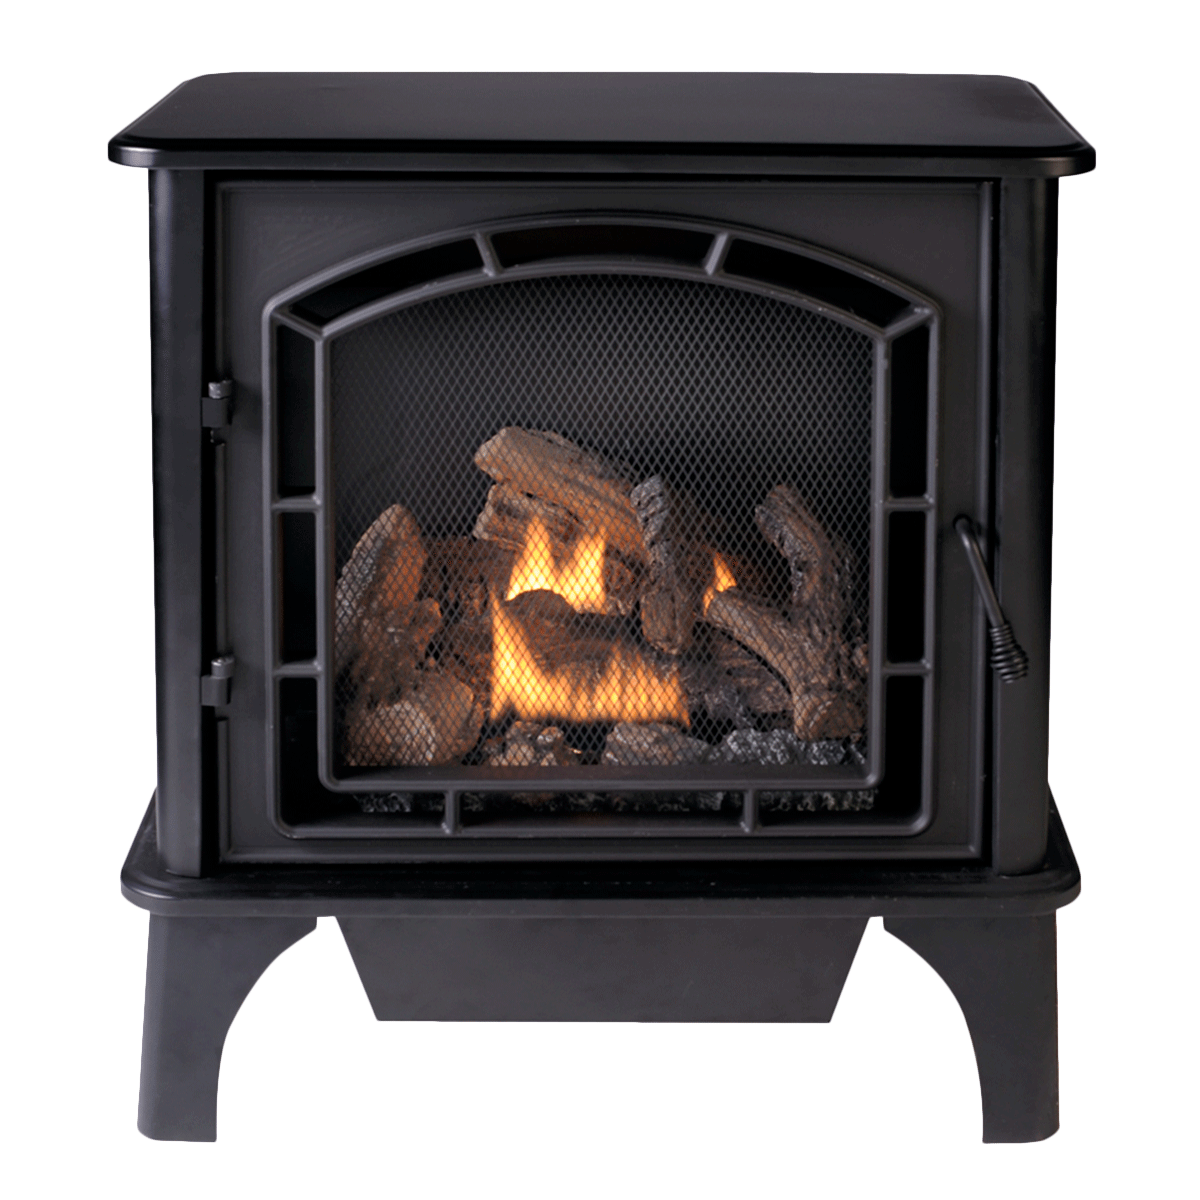 Fireplace terminology glossary of fireplace terms for Heating options for homes without gas